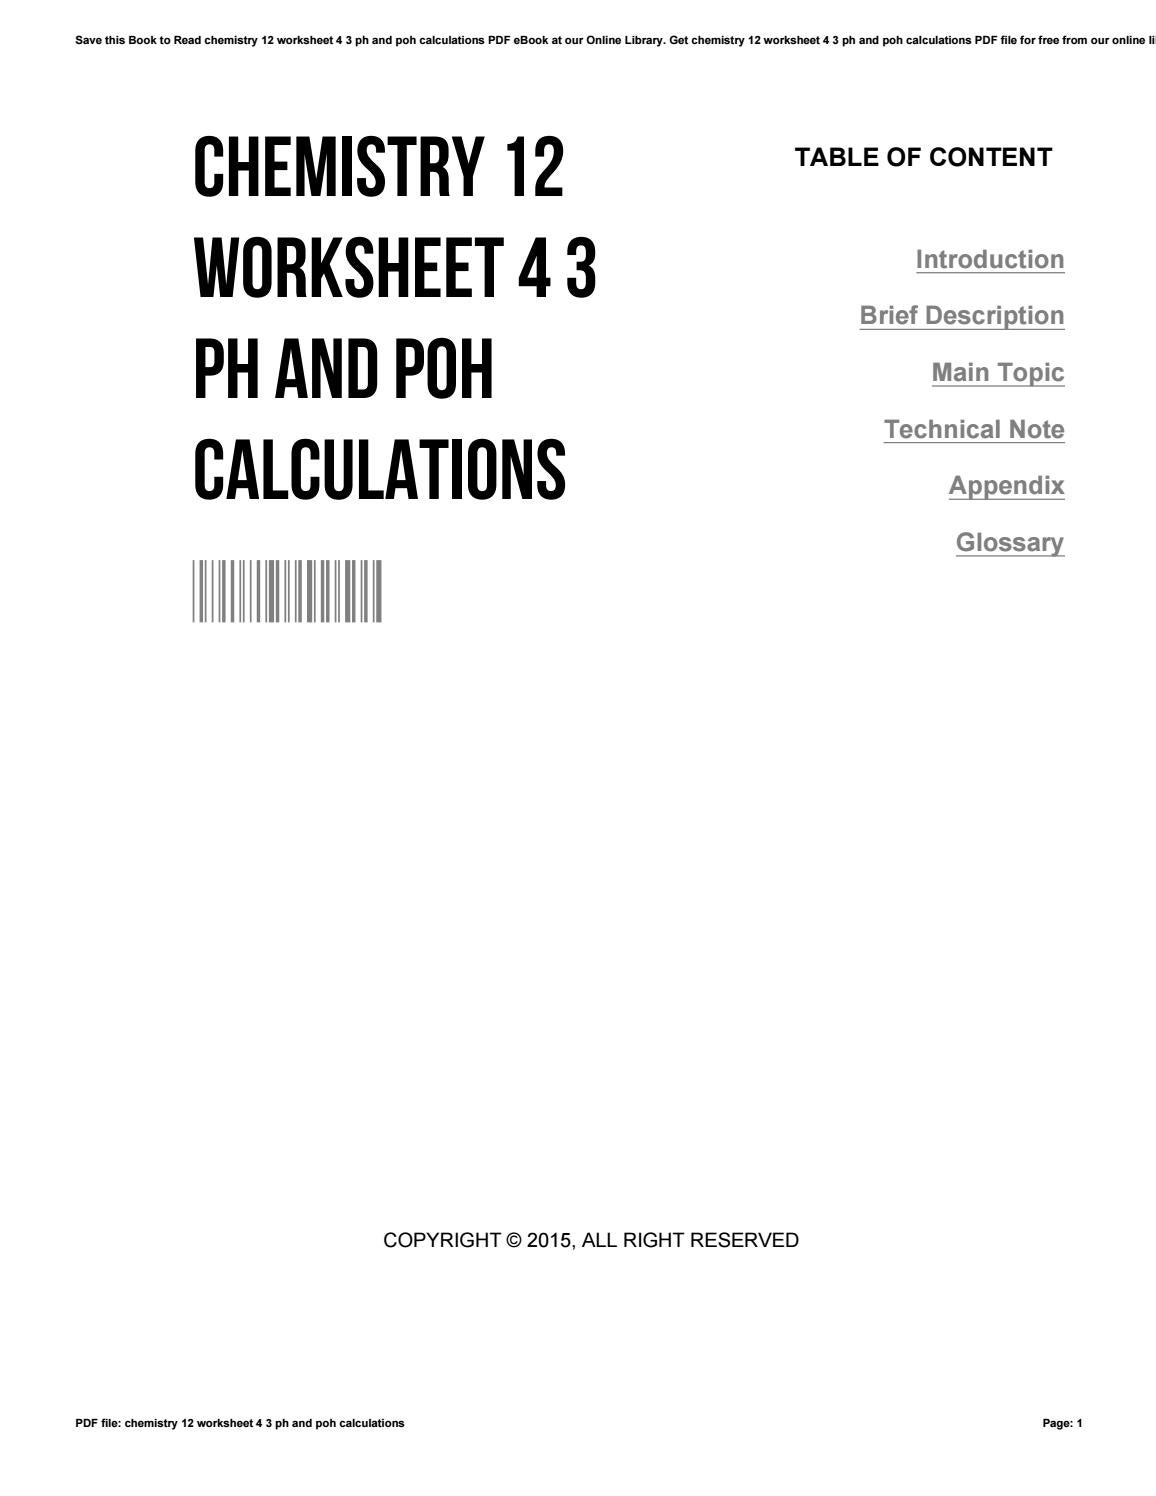 Worksheets Ph And Poh Calculations Worksheet chemistry 12 worksheet 4 3 ph and poh calculations by paulinestevenson3944 issuu